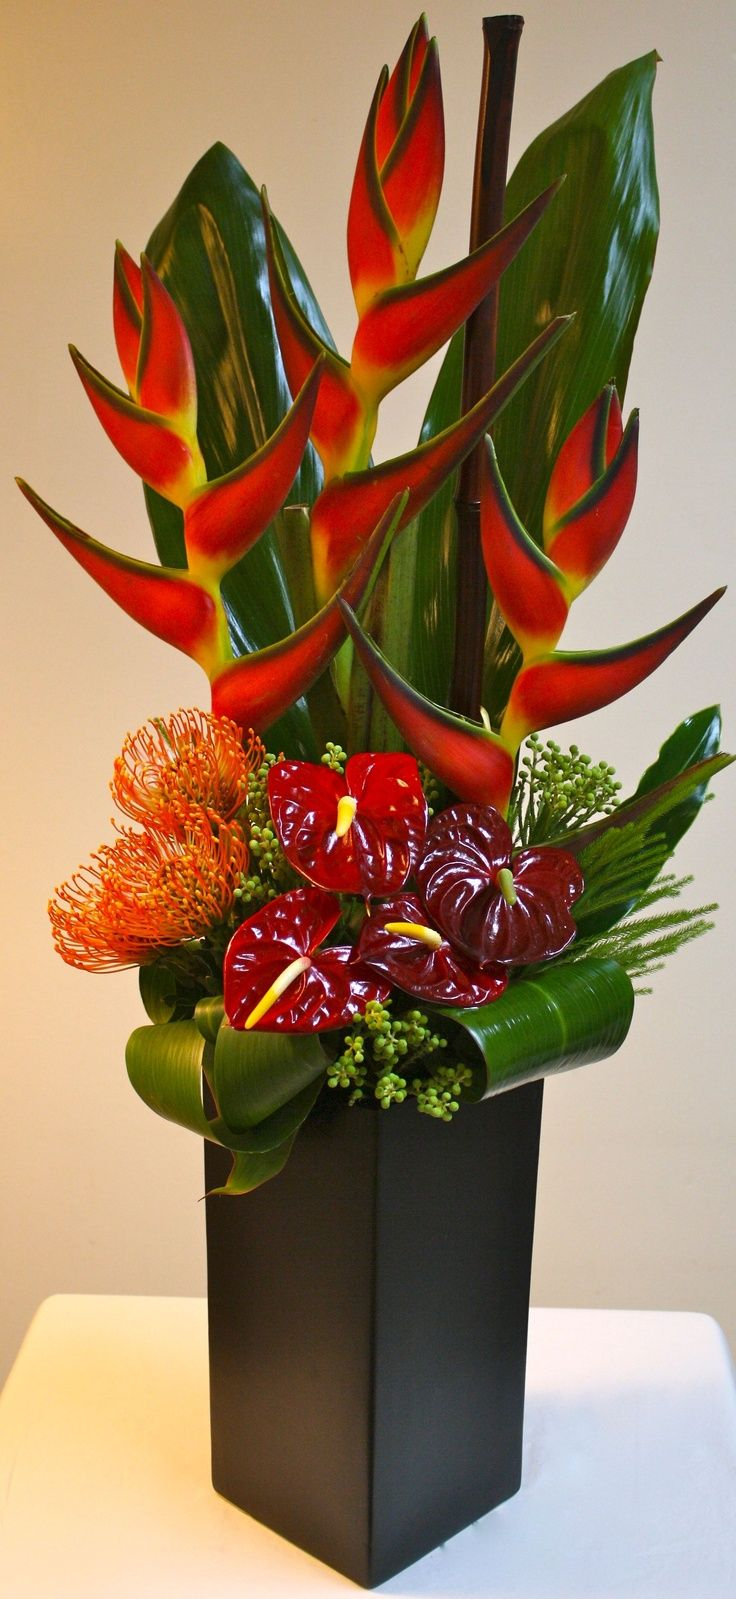 Jordan: A tropical mix of Orange Birds of Paradise, Orange Pin Cushions,  Red Anthurium complimented with Green Tropical Leaves in a tall black  ceramic vase.